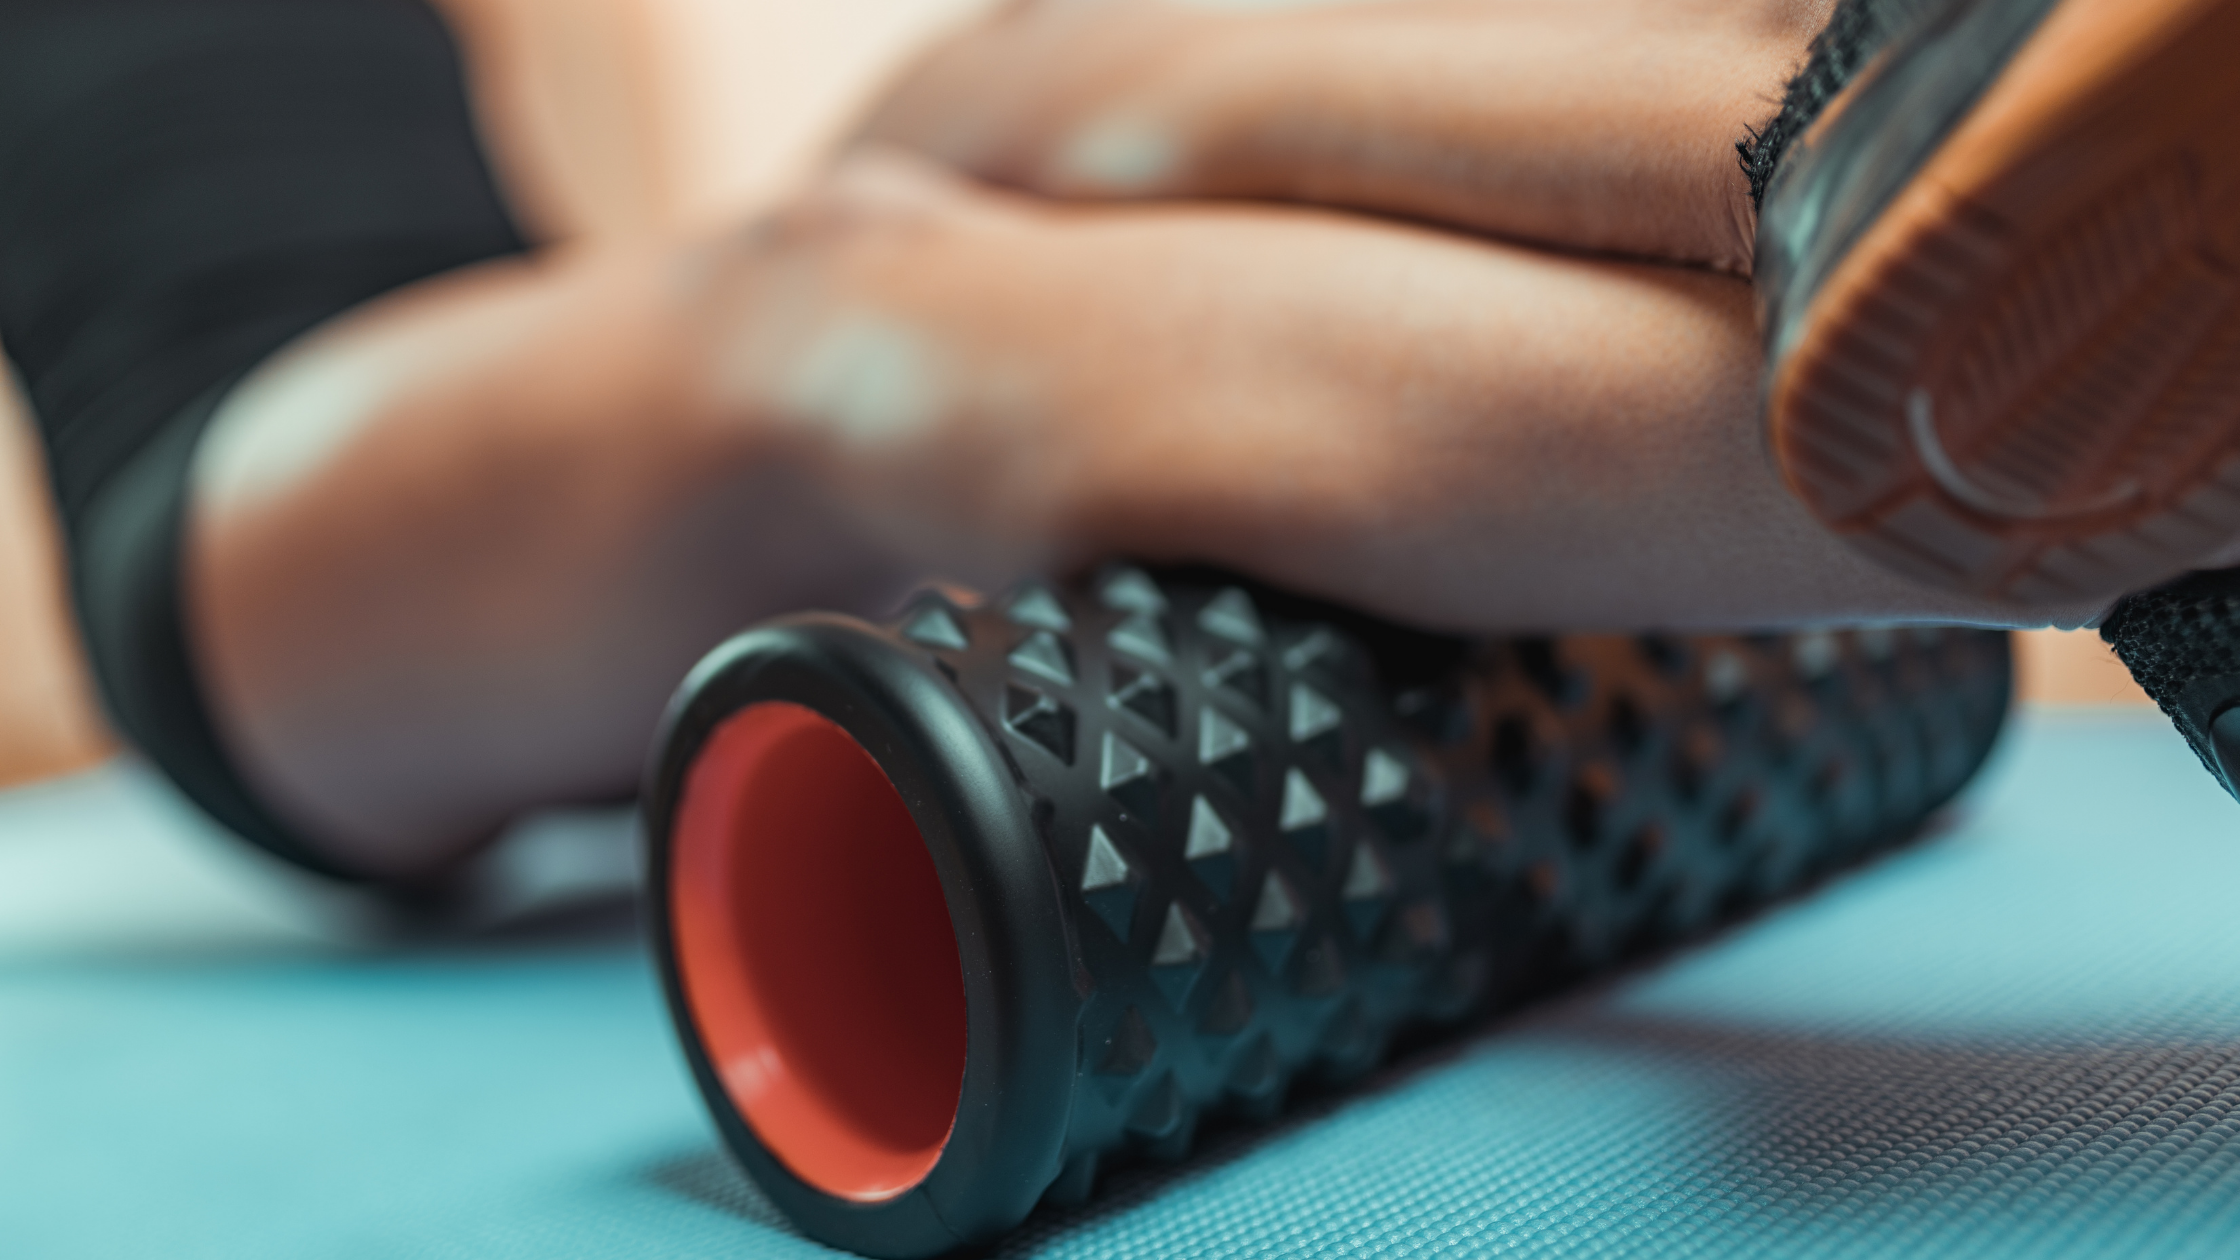 5 Proven Ways To Reduce Muscle Soreness - Foam Roller